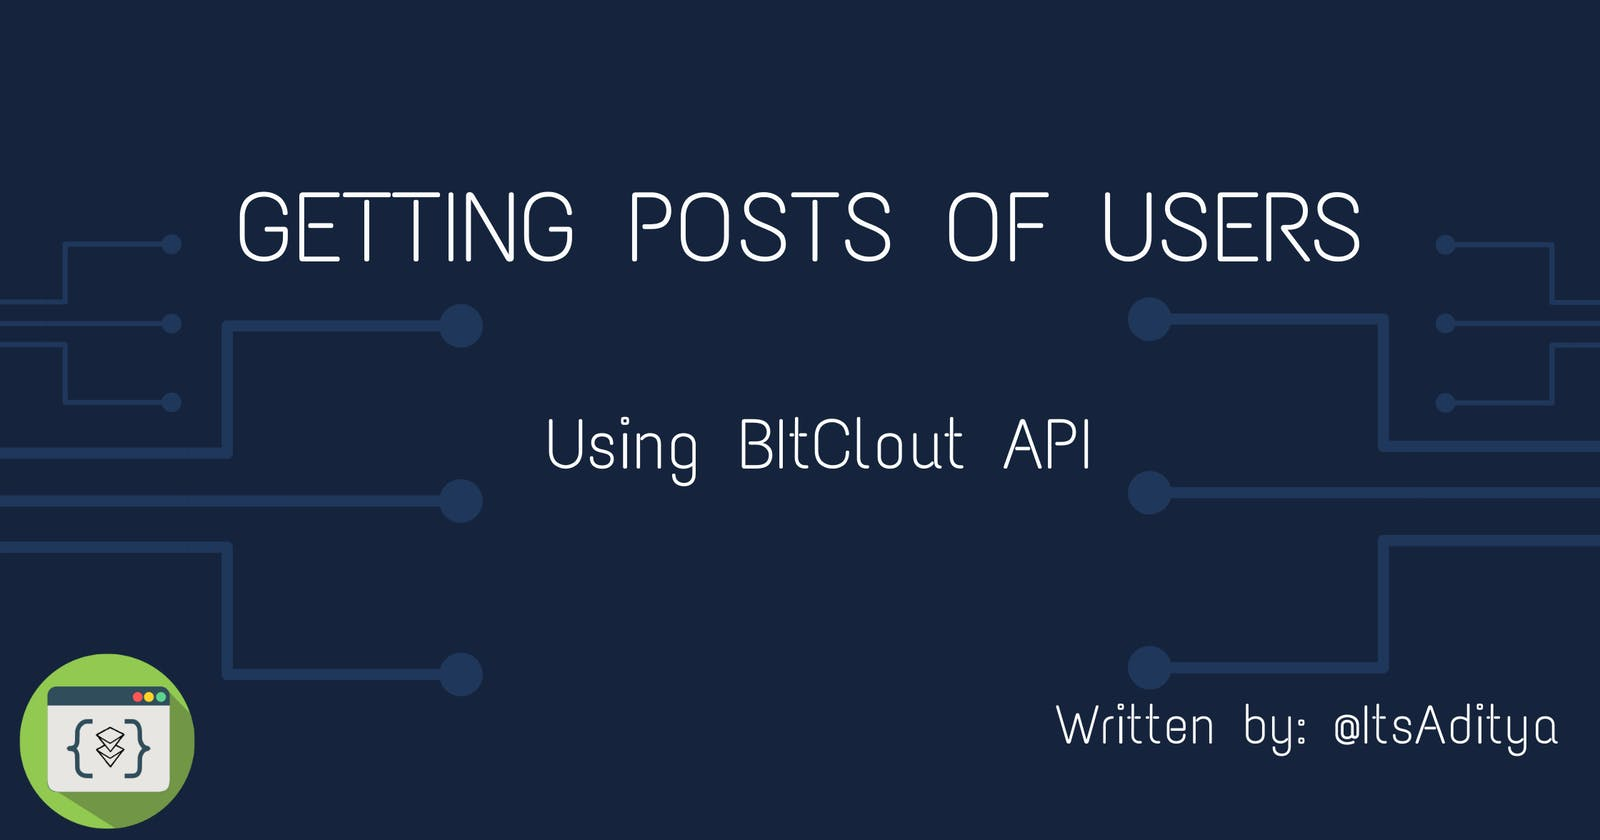 Getting posts of BitClout User